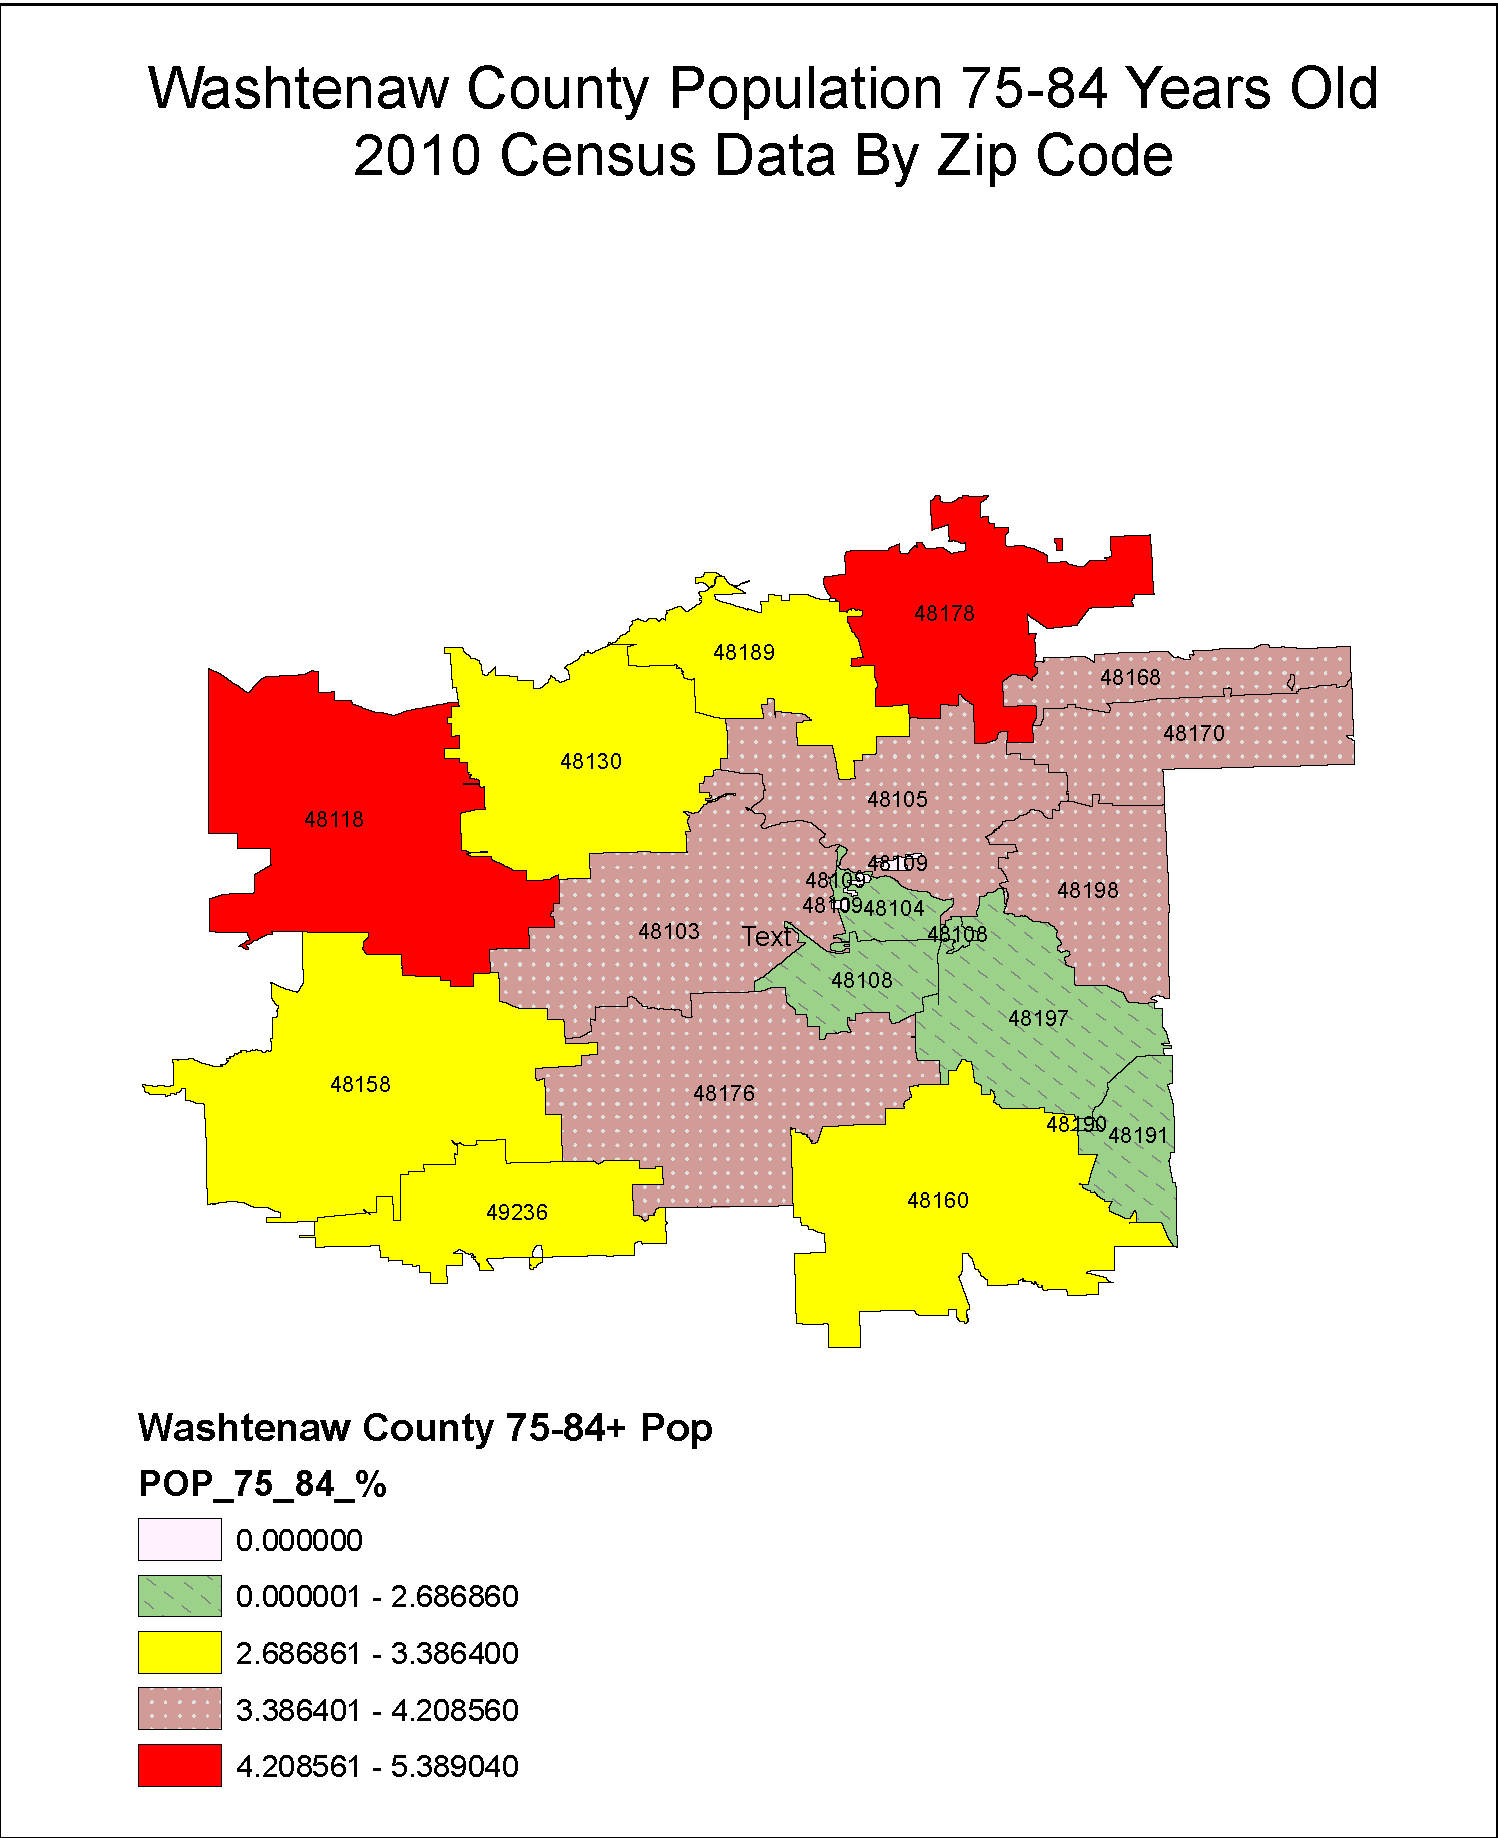 Washtenaw County Population 75-84 Years Old by Zip Code